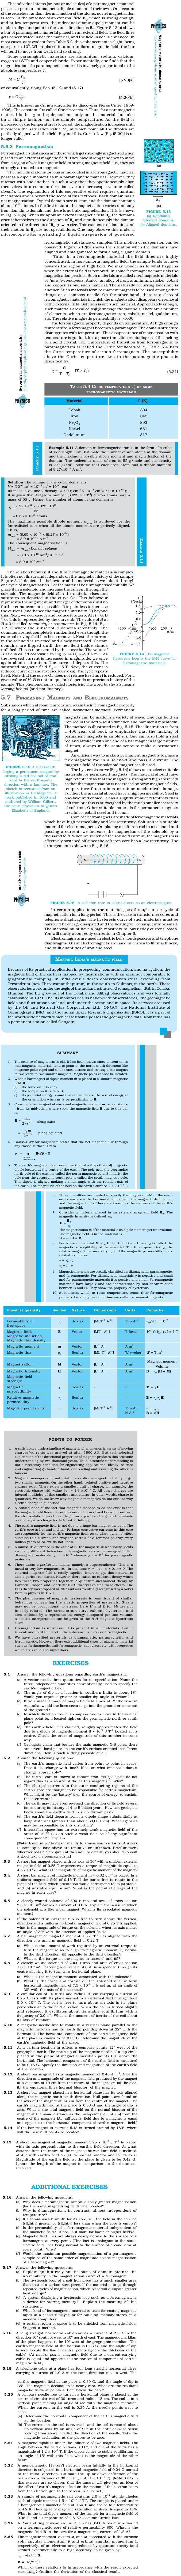 NCERT Class XII Physics Chapter 5 - Magnetism and Matter